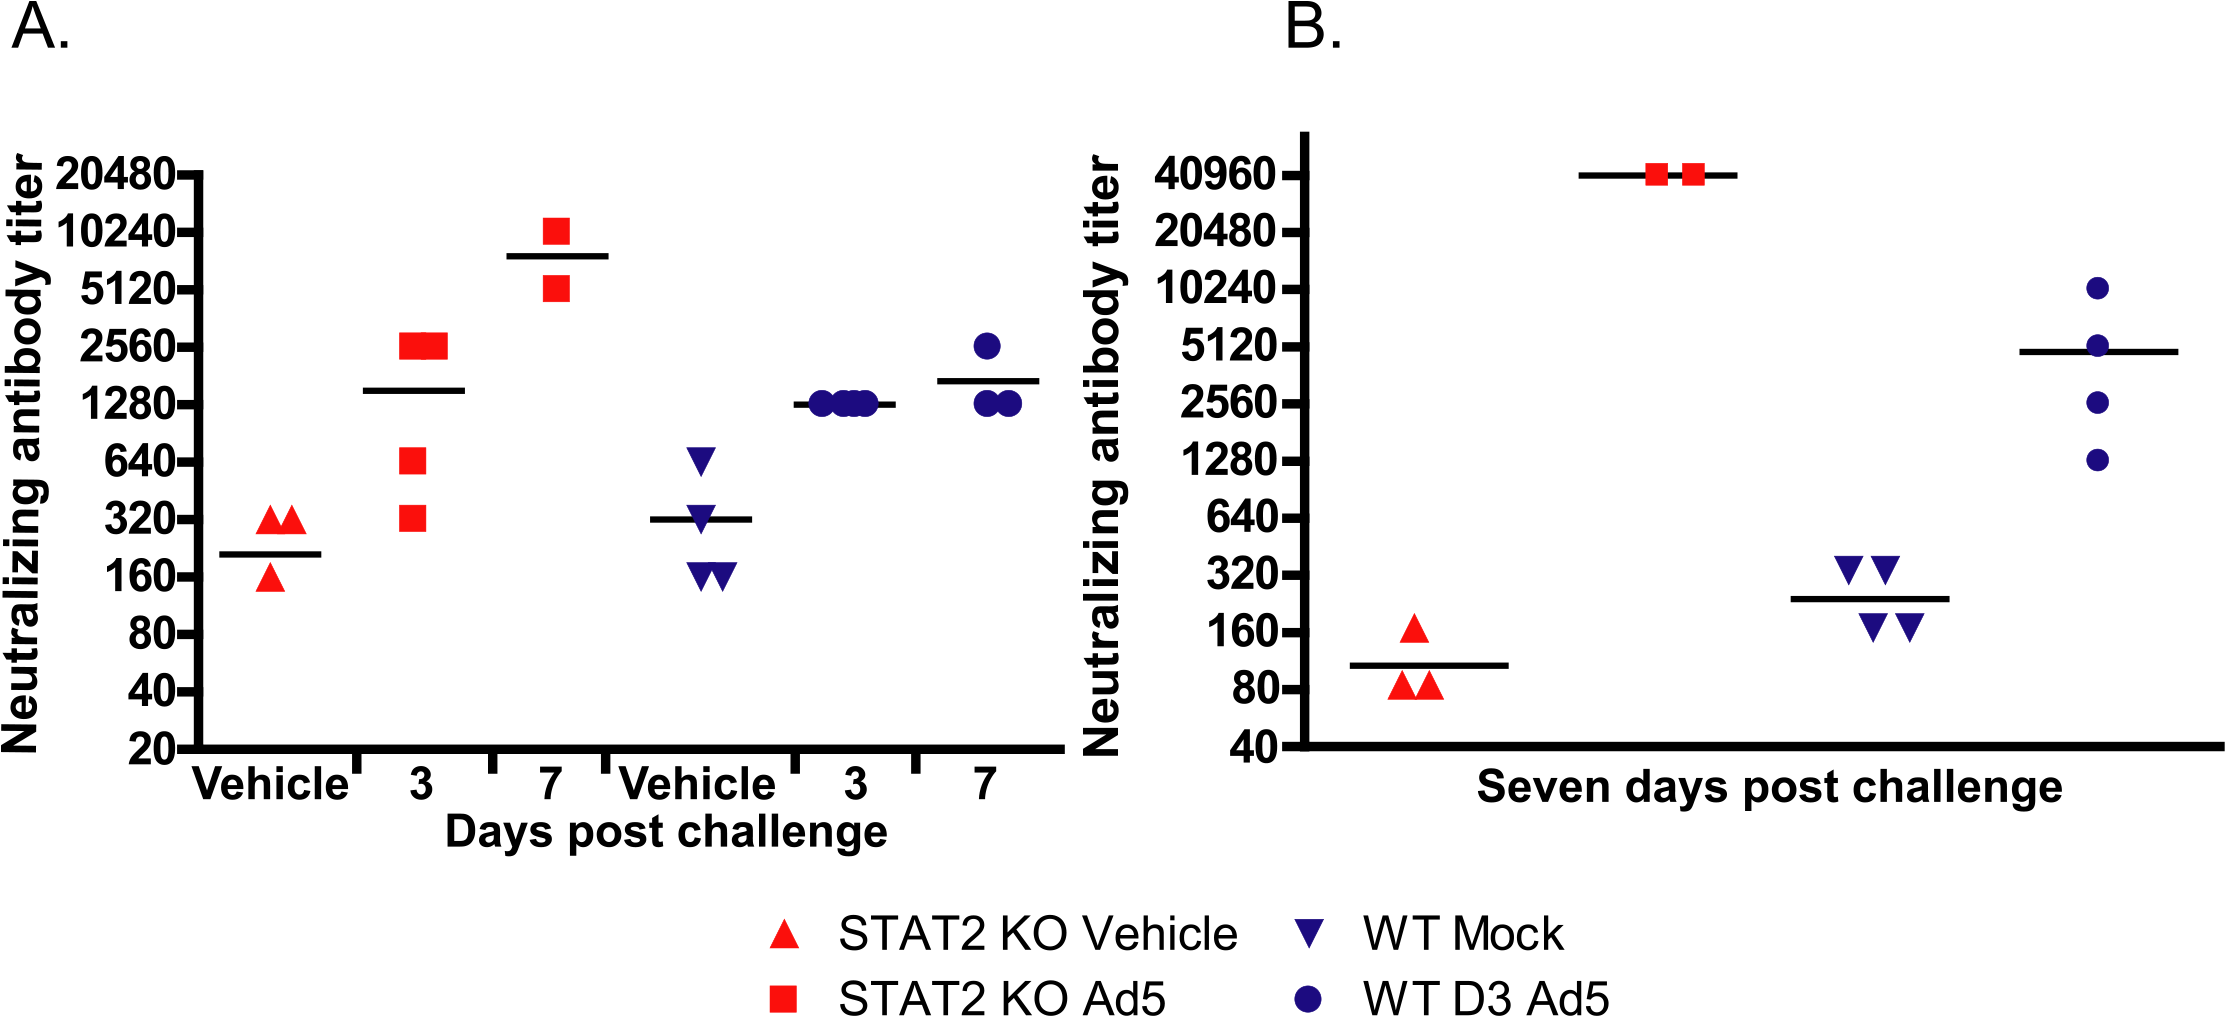 After Ad5 infection, the humoral immune response is accentuated in the STAT2 KO animals.